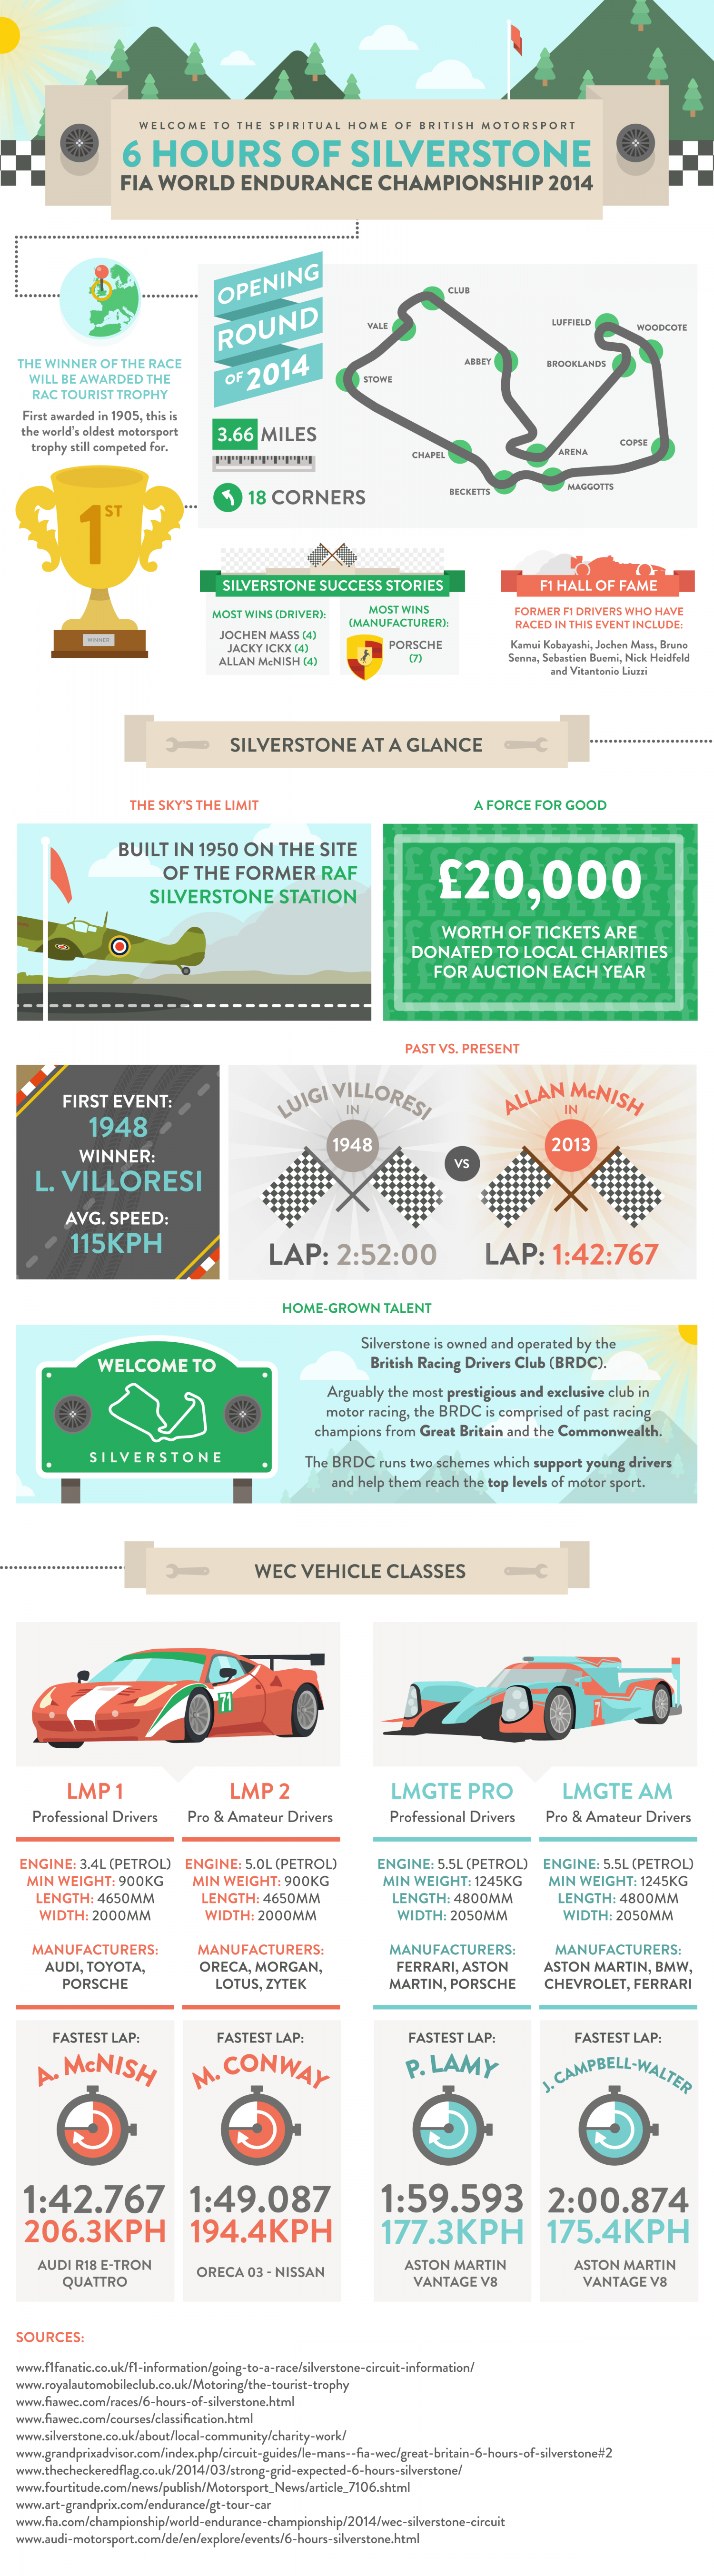 FIA World Endurance Championship at Silverstone Infographic